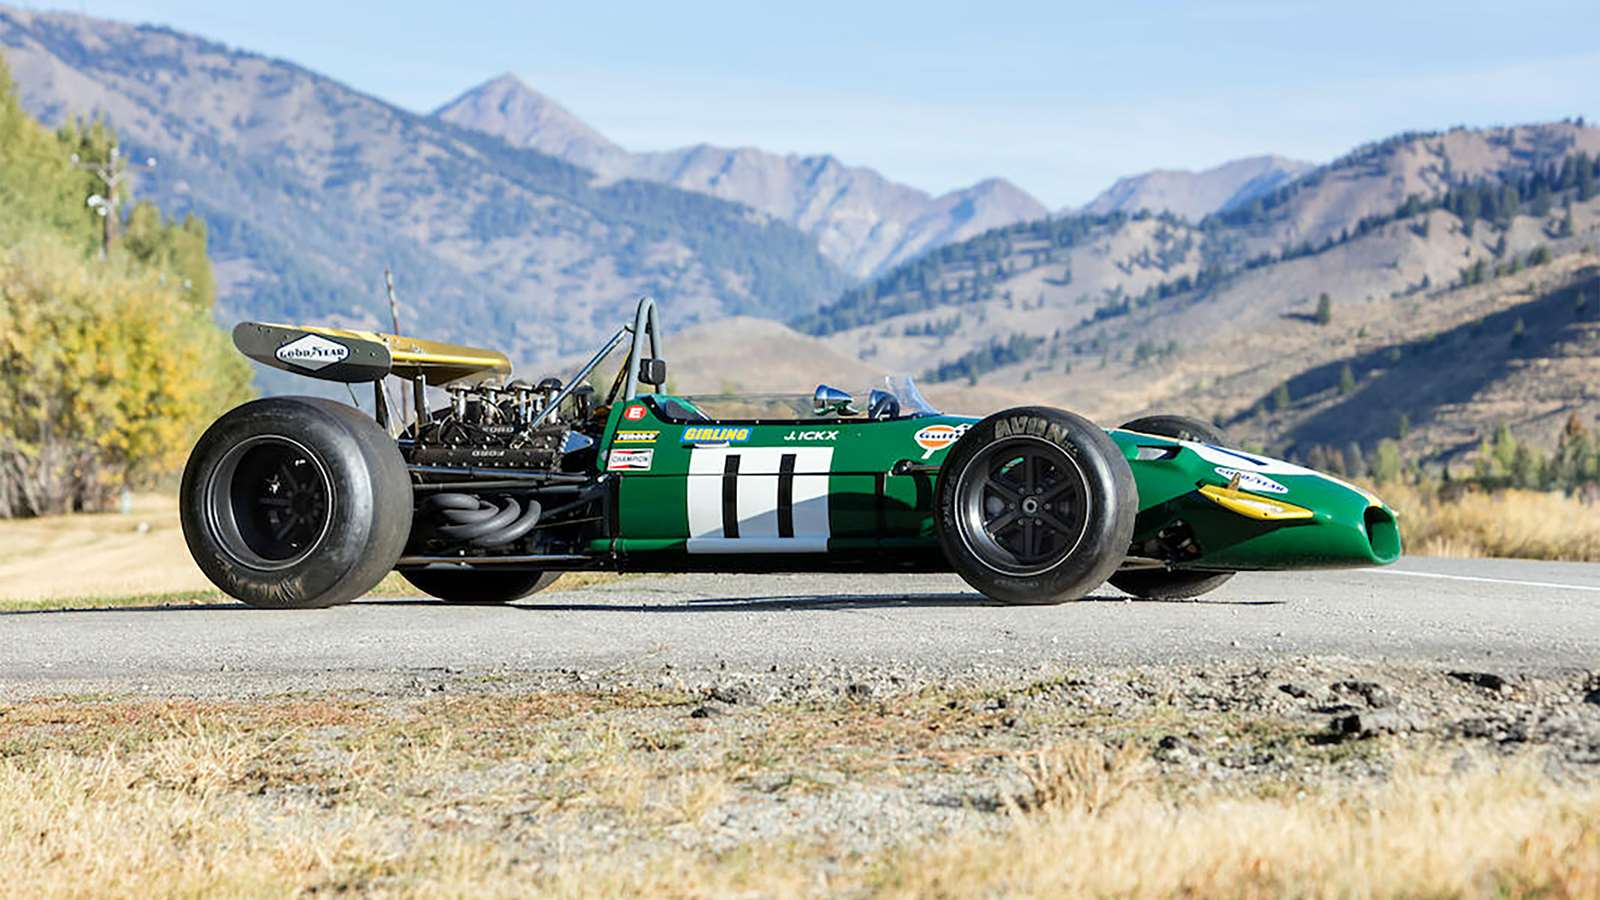 Your chance to own Jacky Ickx's BT26A F1 Car